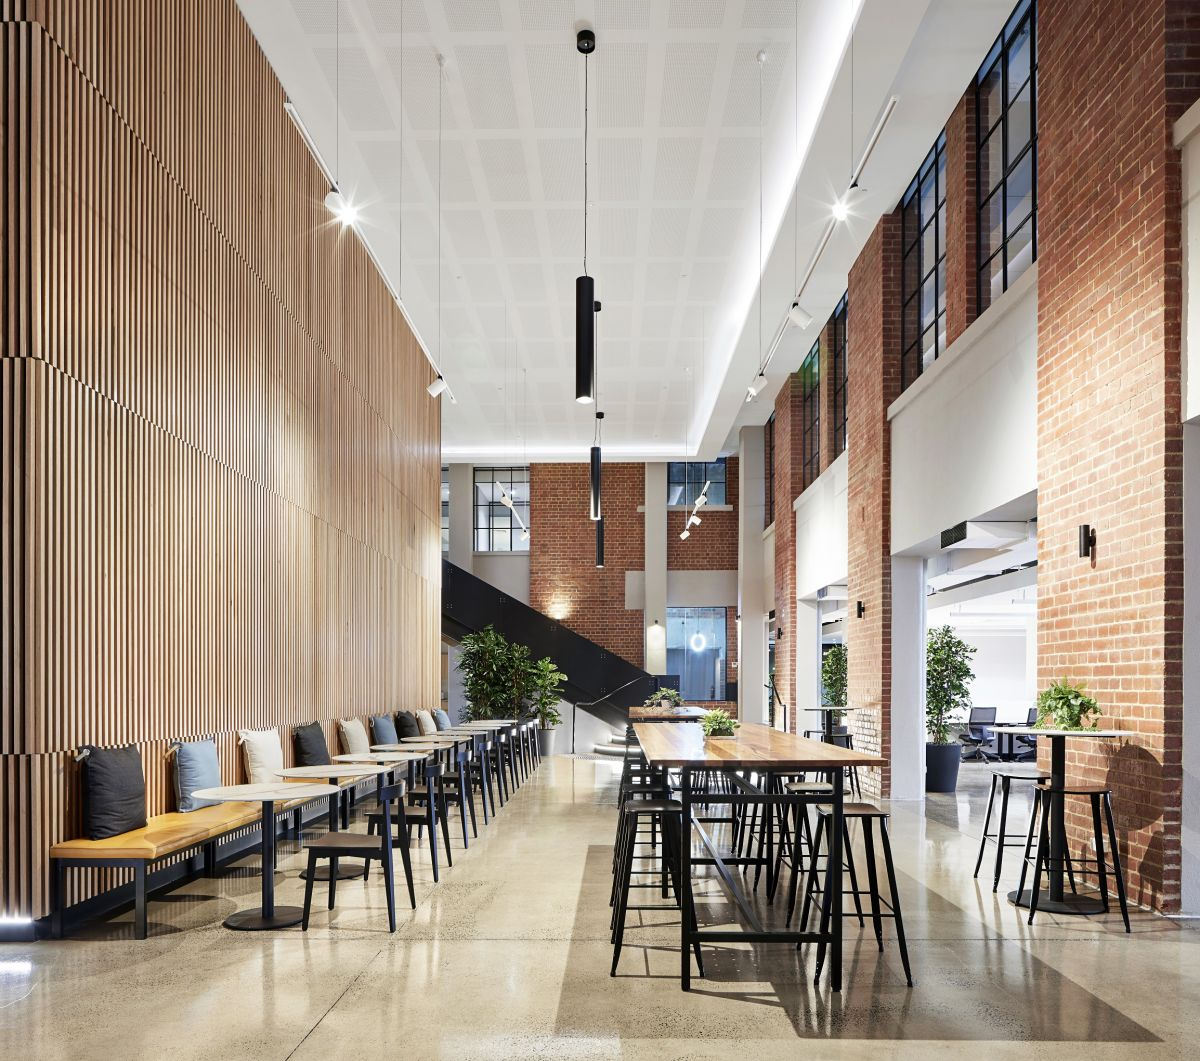 Coworking operator United Co's premises by PTID is an adaptive reuse of an old warehouse. Photo: Tatjana Plitt